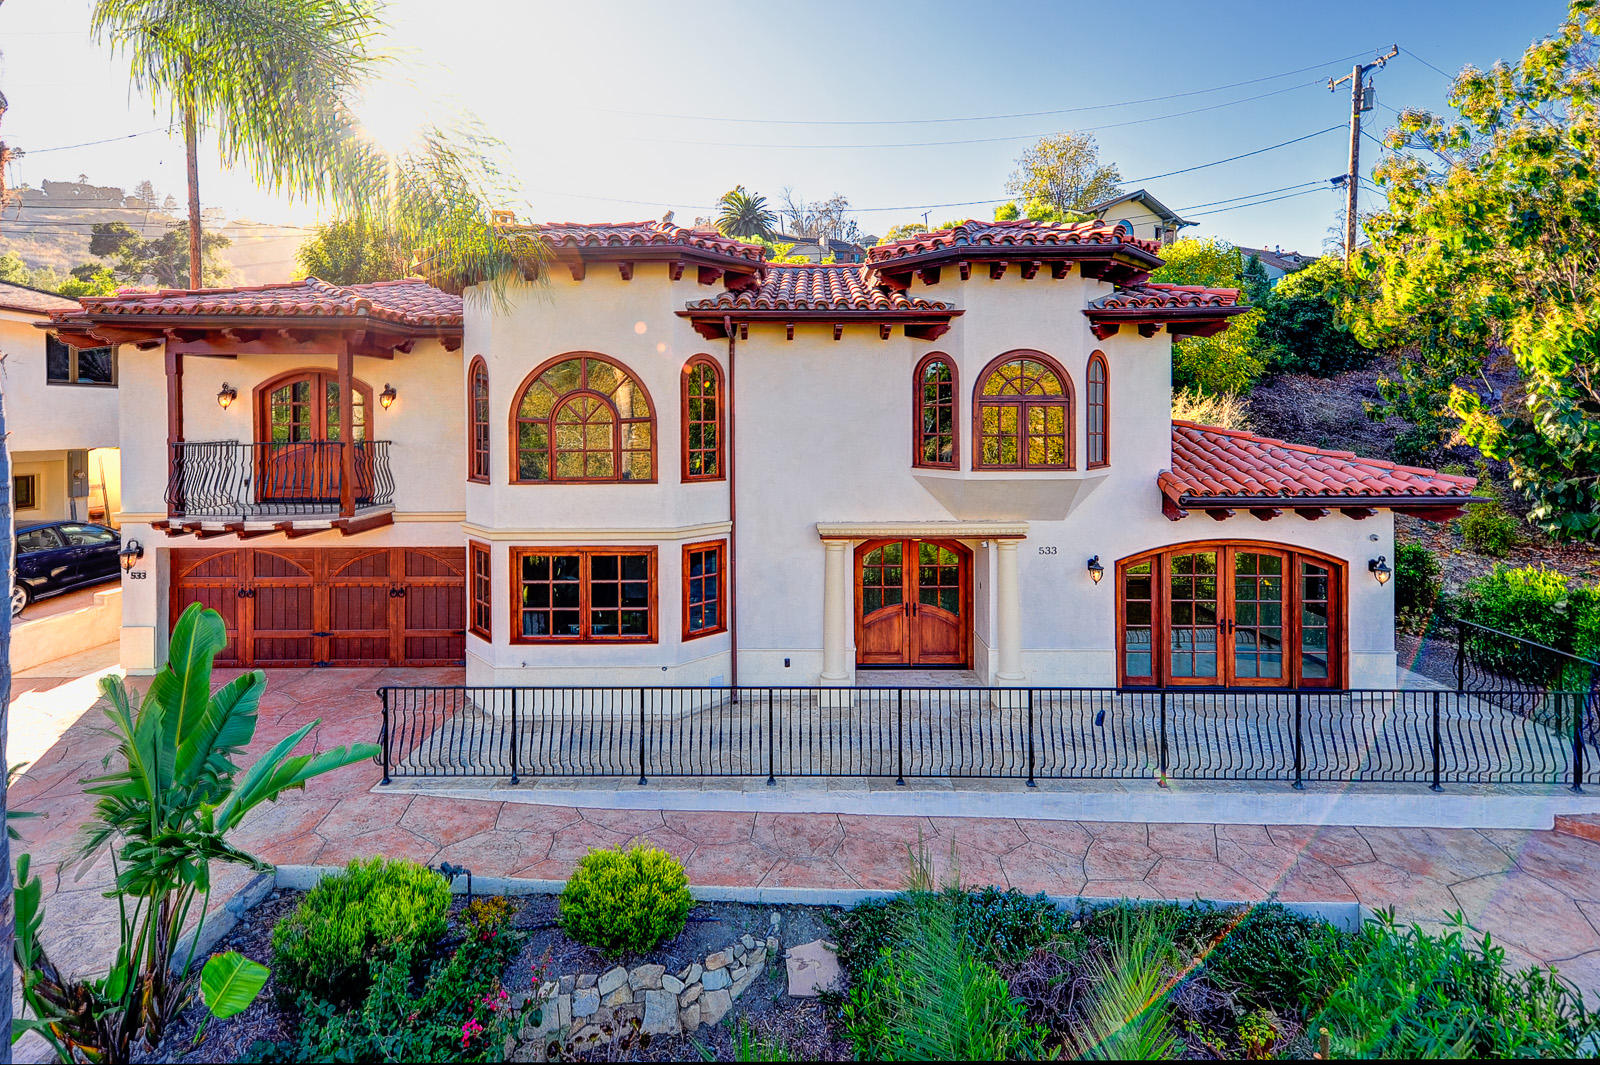 Property photo for 533 Conejo Rd Santa Barbara, California 93103 - 16-3892